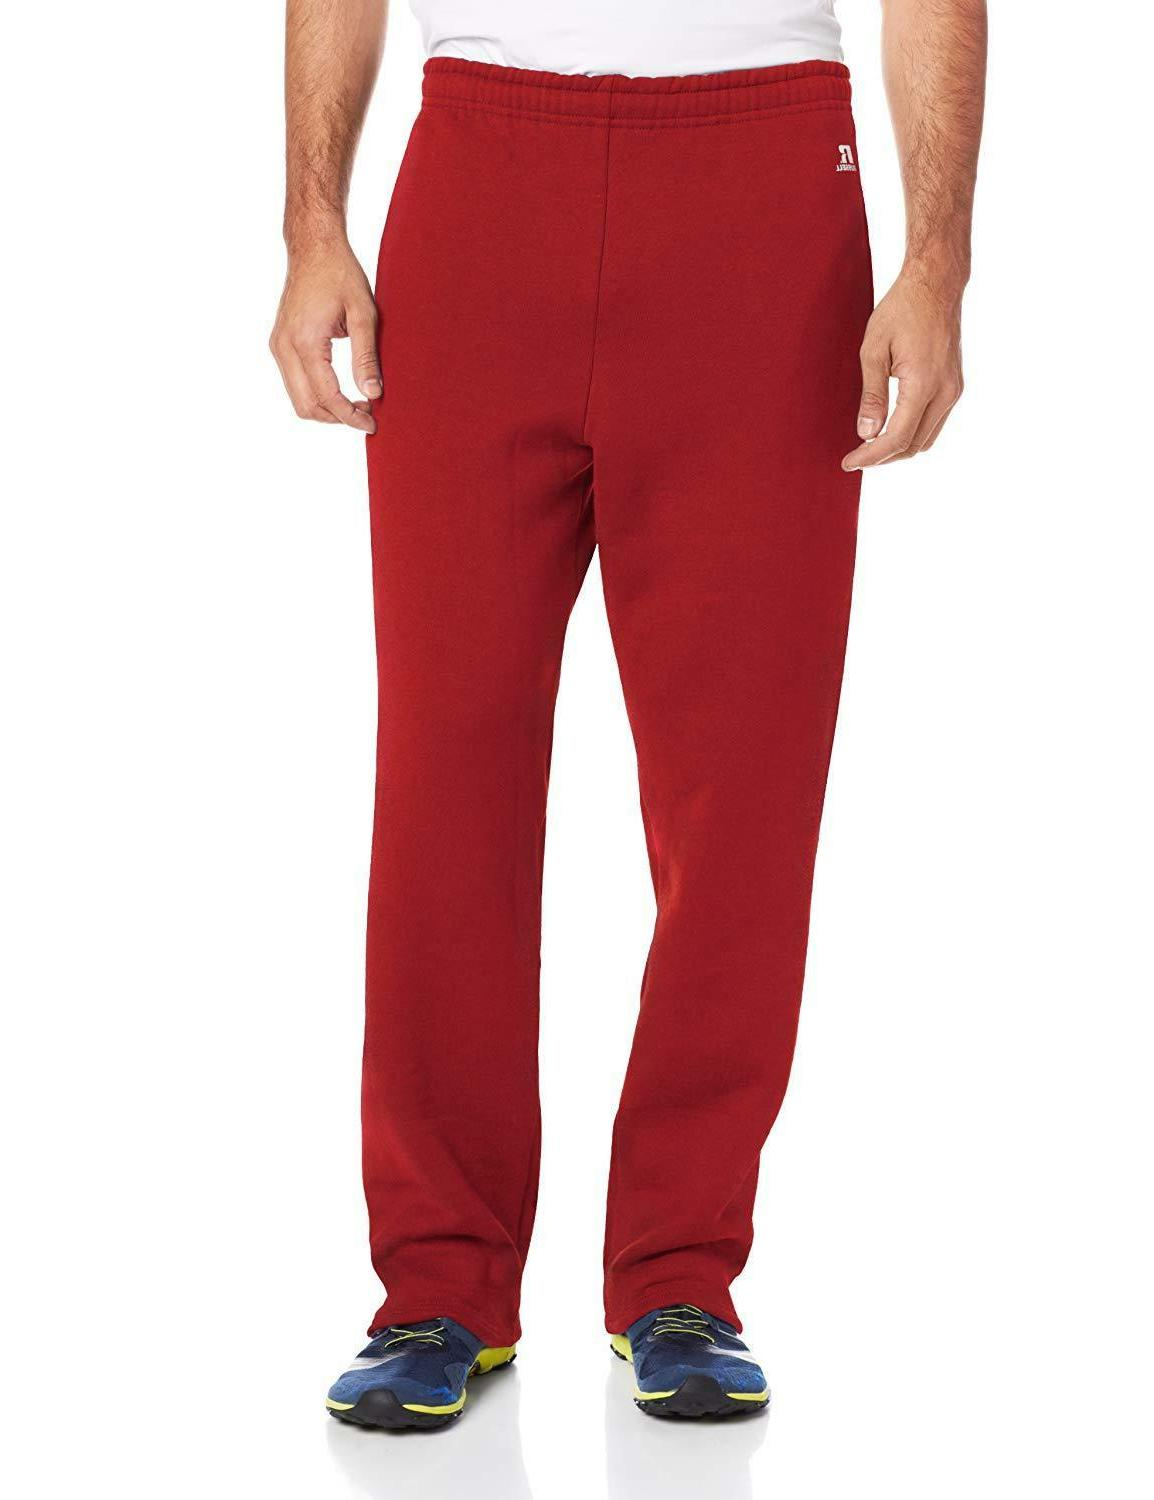 Russell Men's Dri-Power Open Sweatpants Pockets